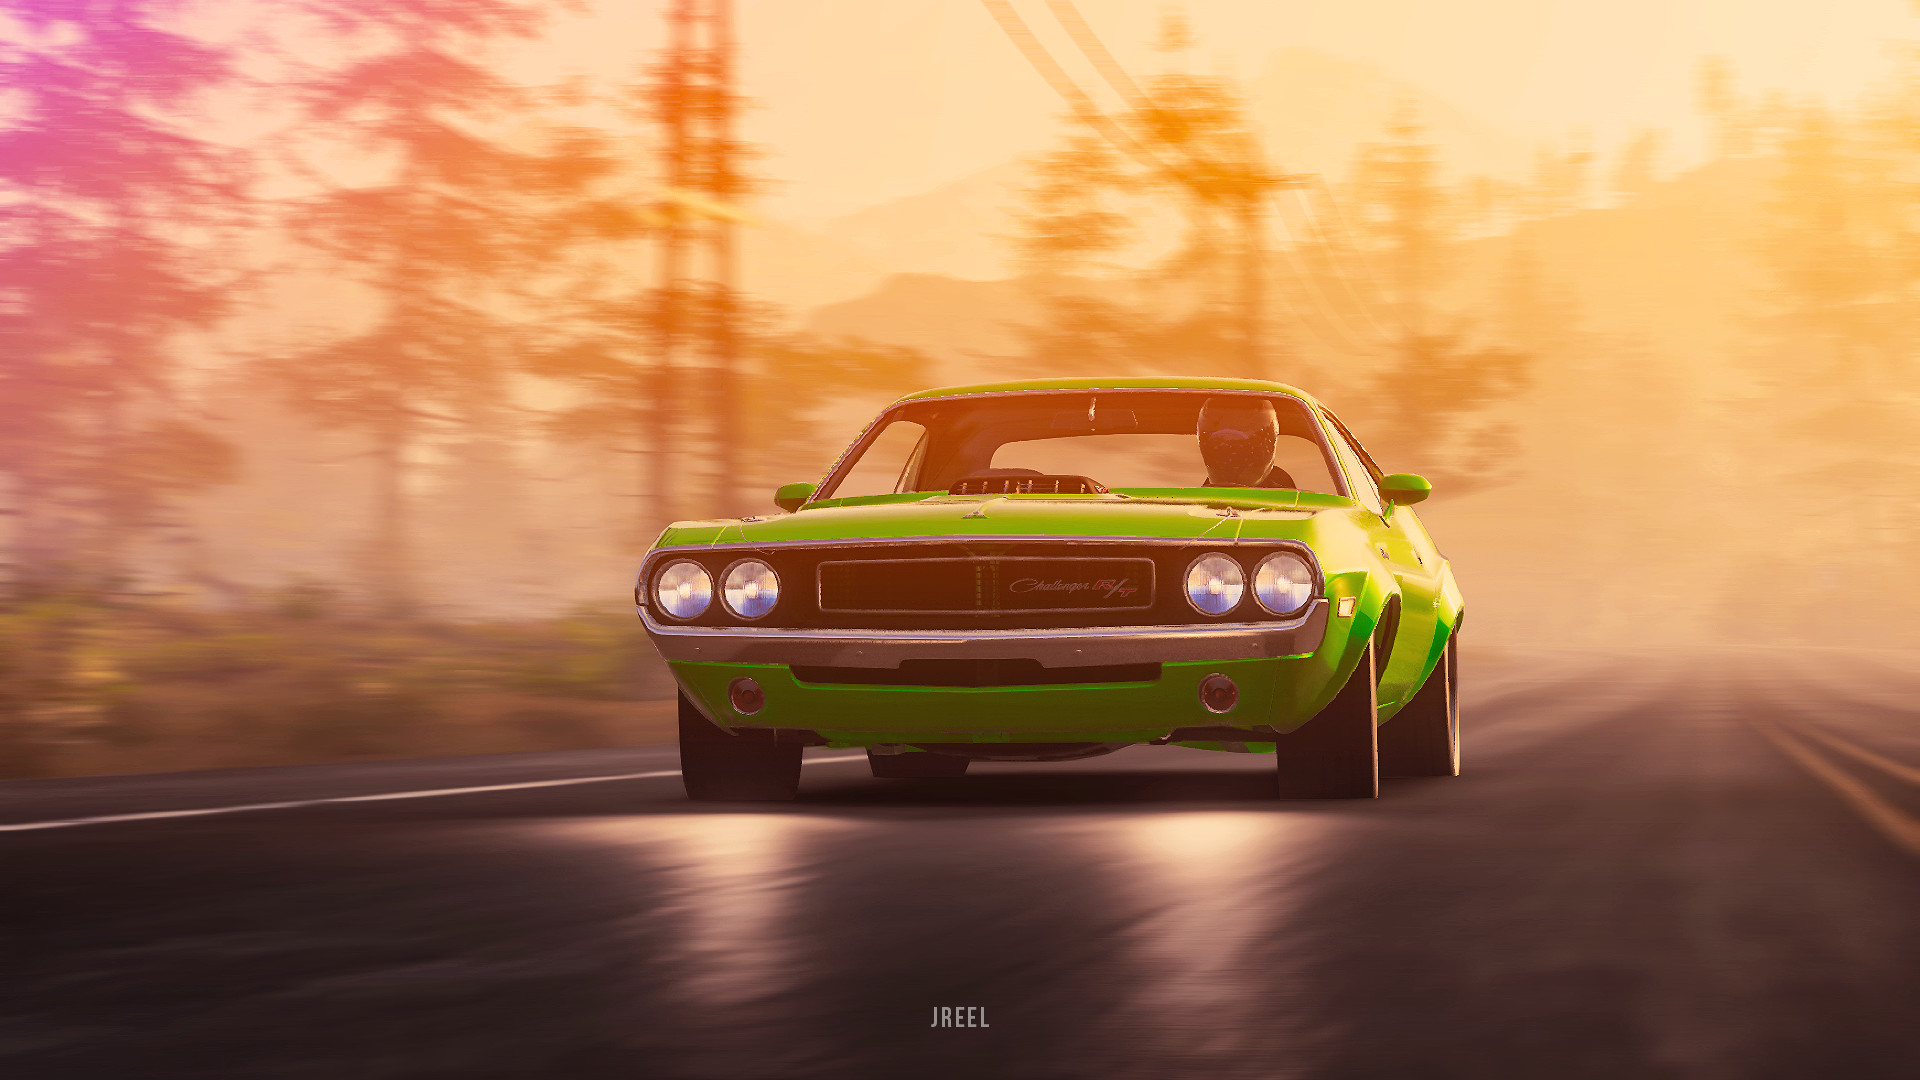 Dodge Challenger 1970 Wallpaper 1970 Dodge Challenger Rt From The Crew 2 Hd Games 4k Wallpapers